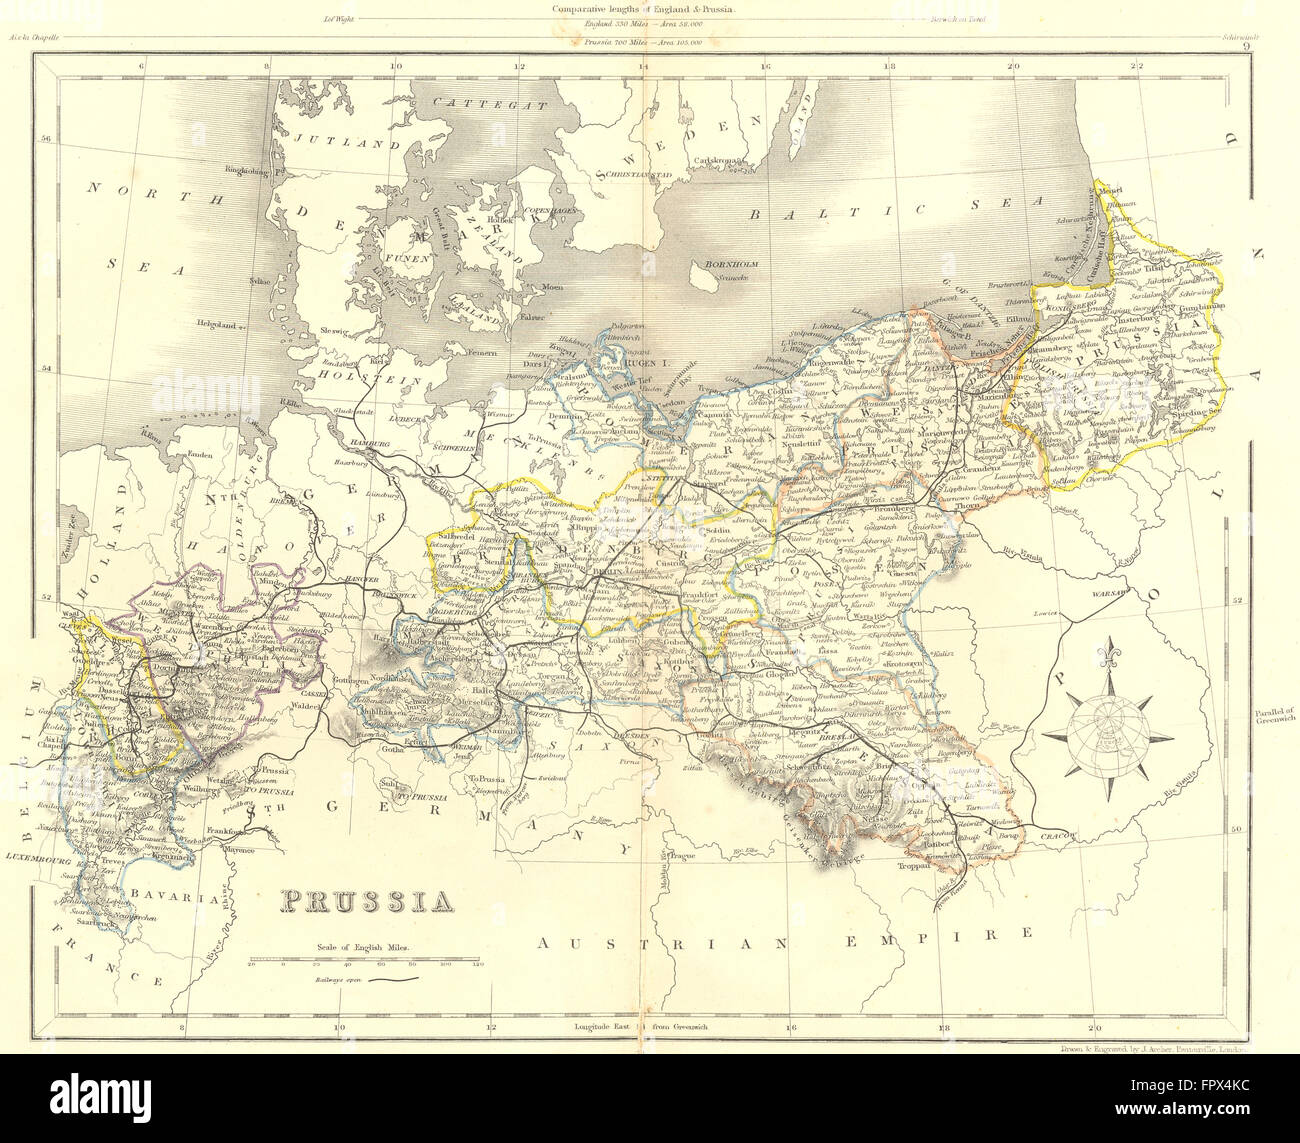 Germany Prussia Archer 1850 Antique Map Stock Photo 100148704